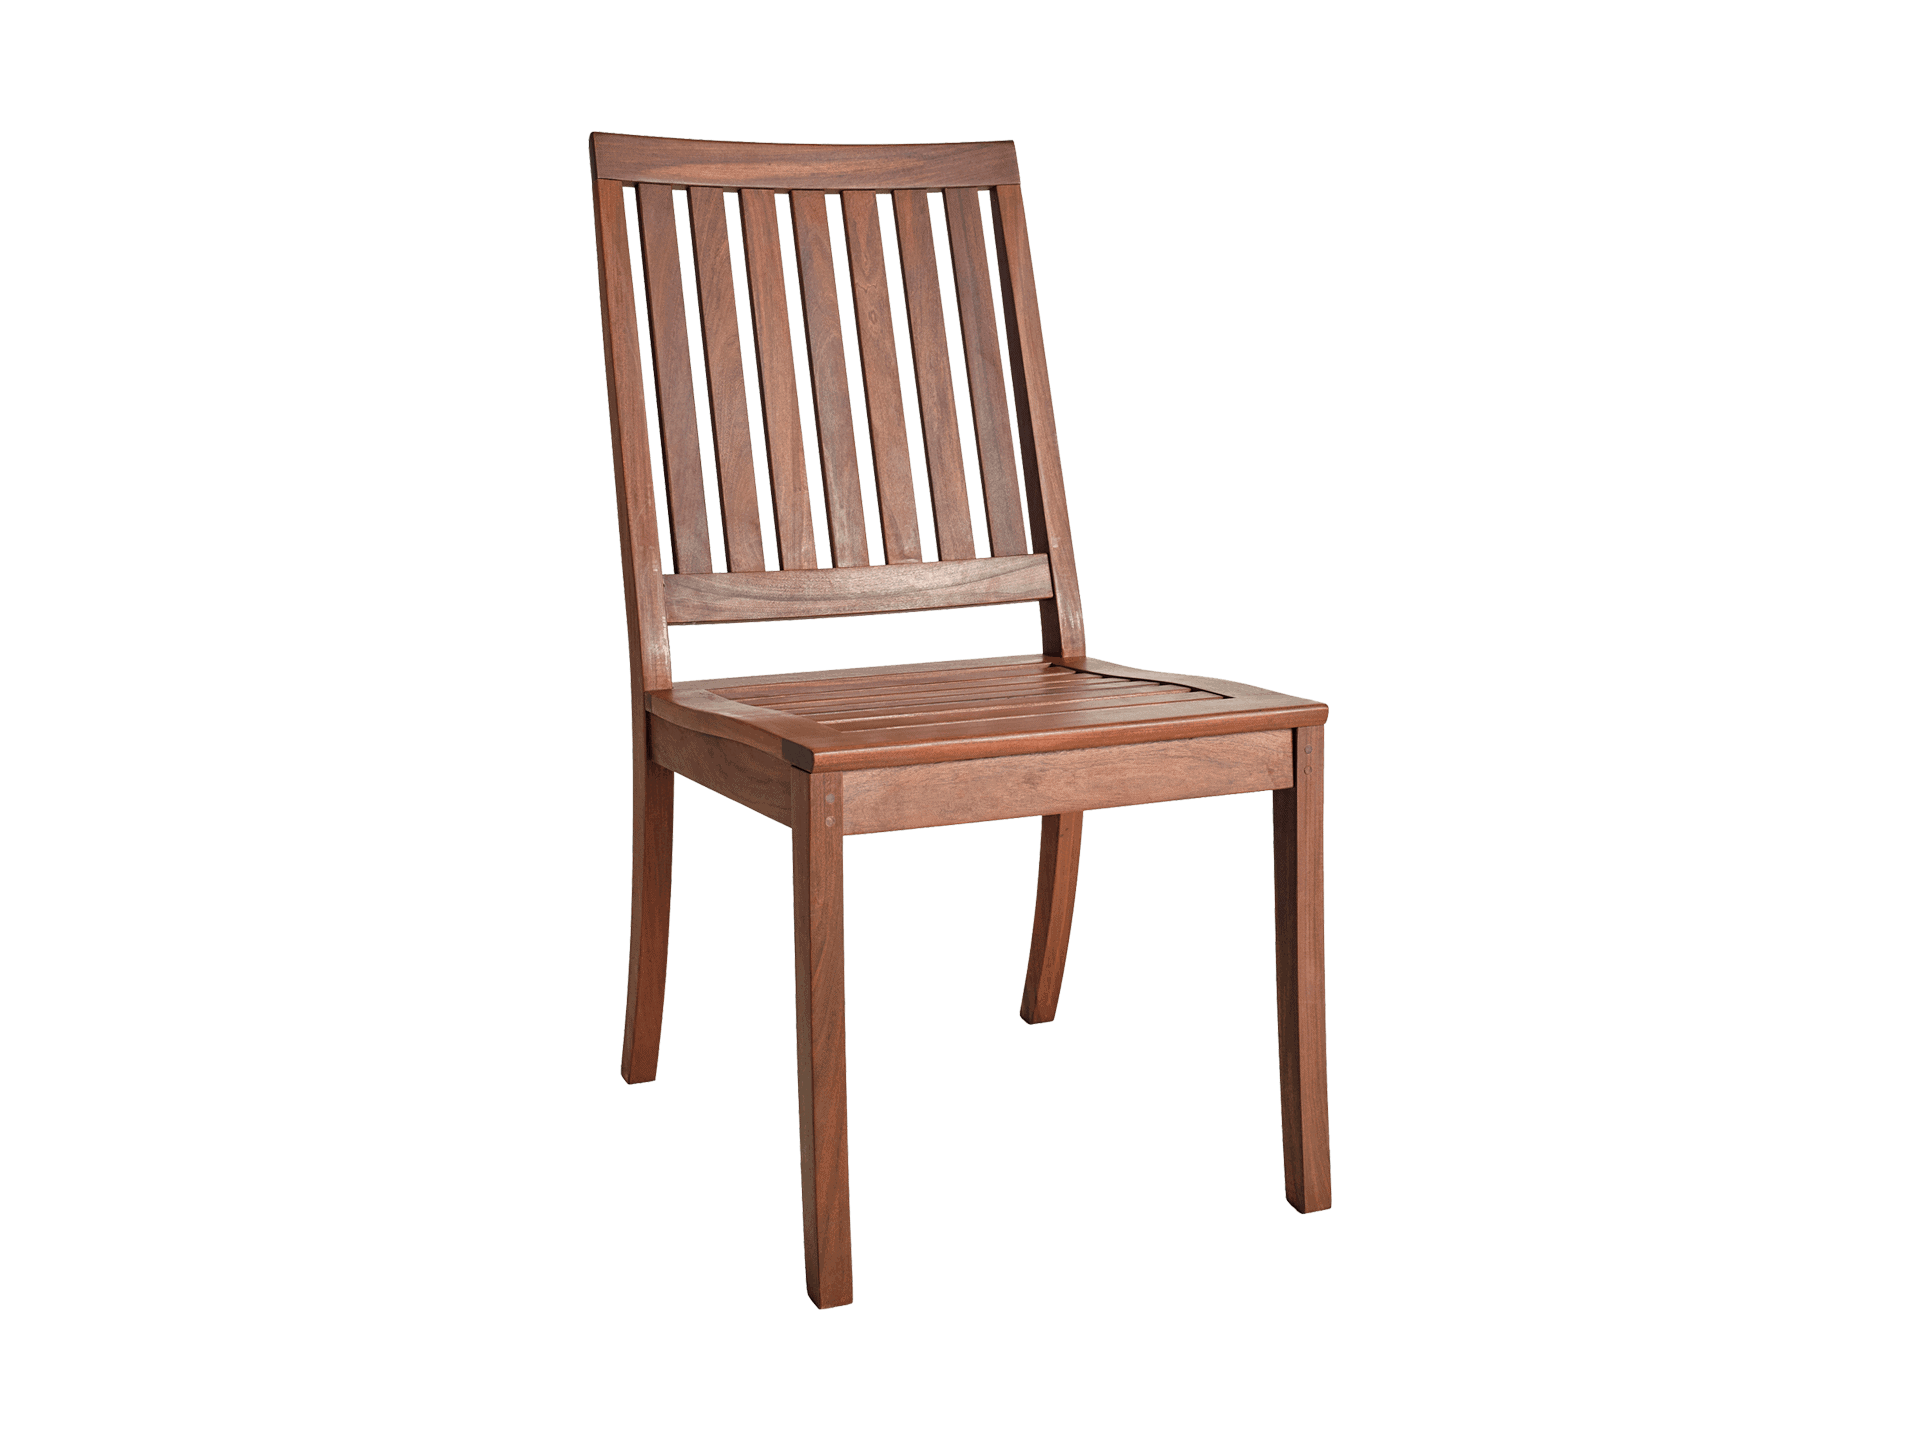 ipe adirondack chairs reclining patio and table richmond side chair jensen leisure furniture